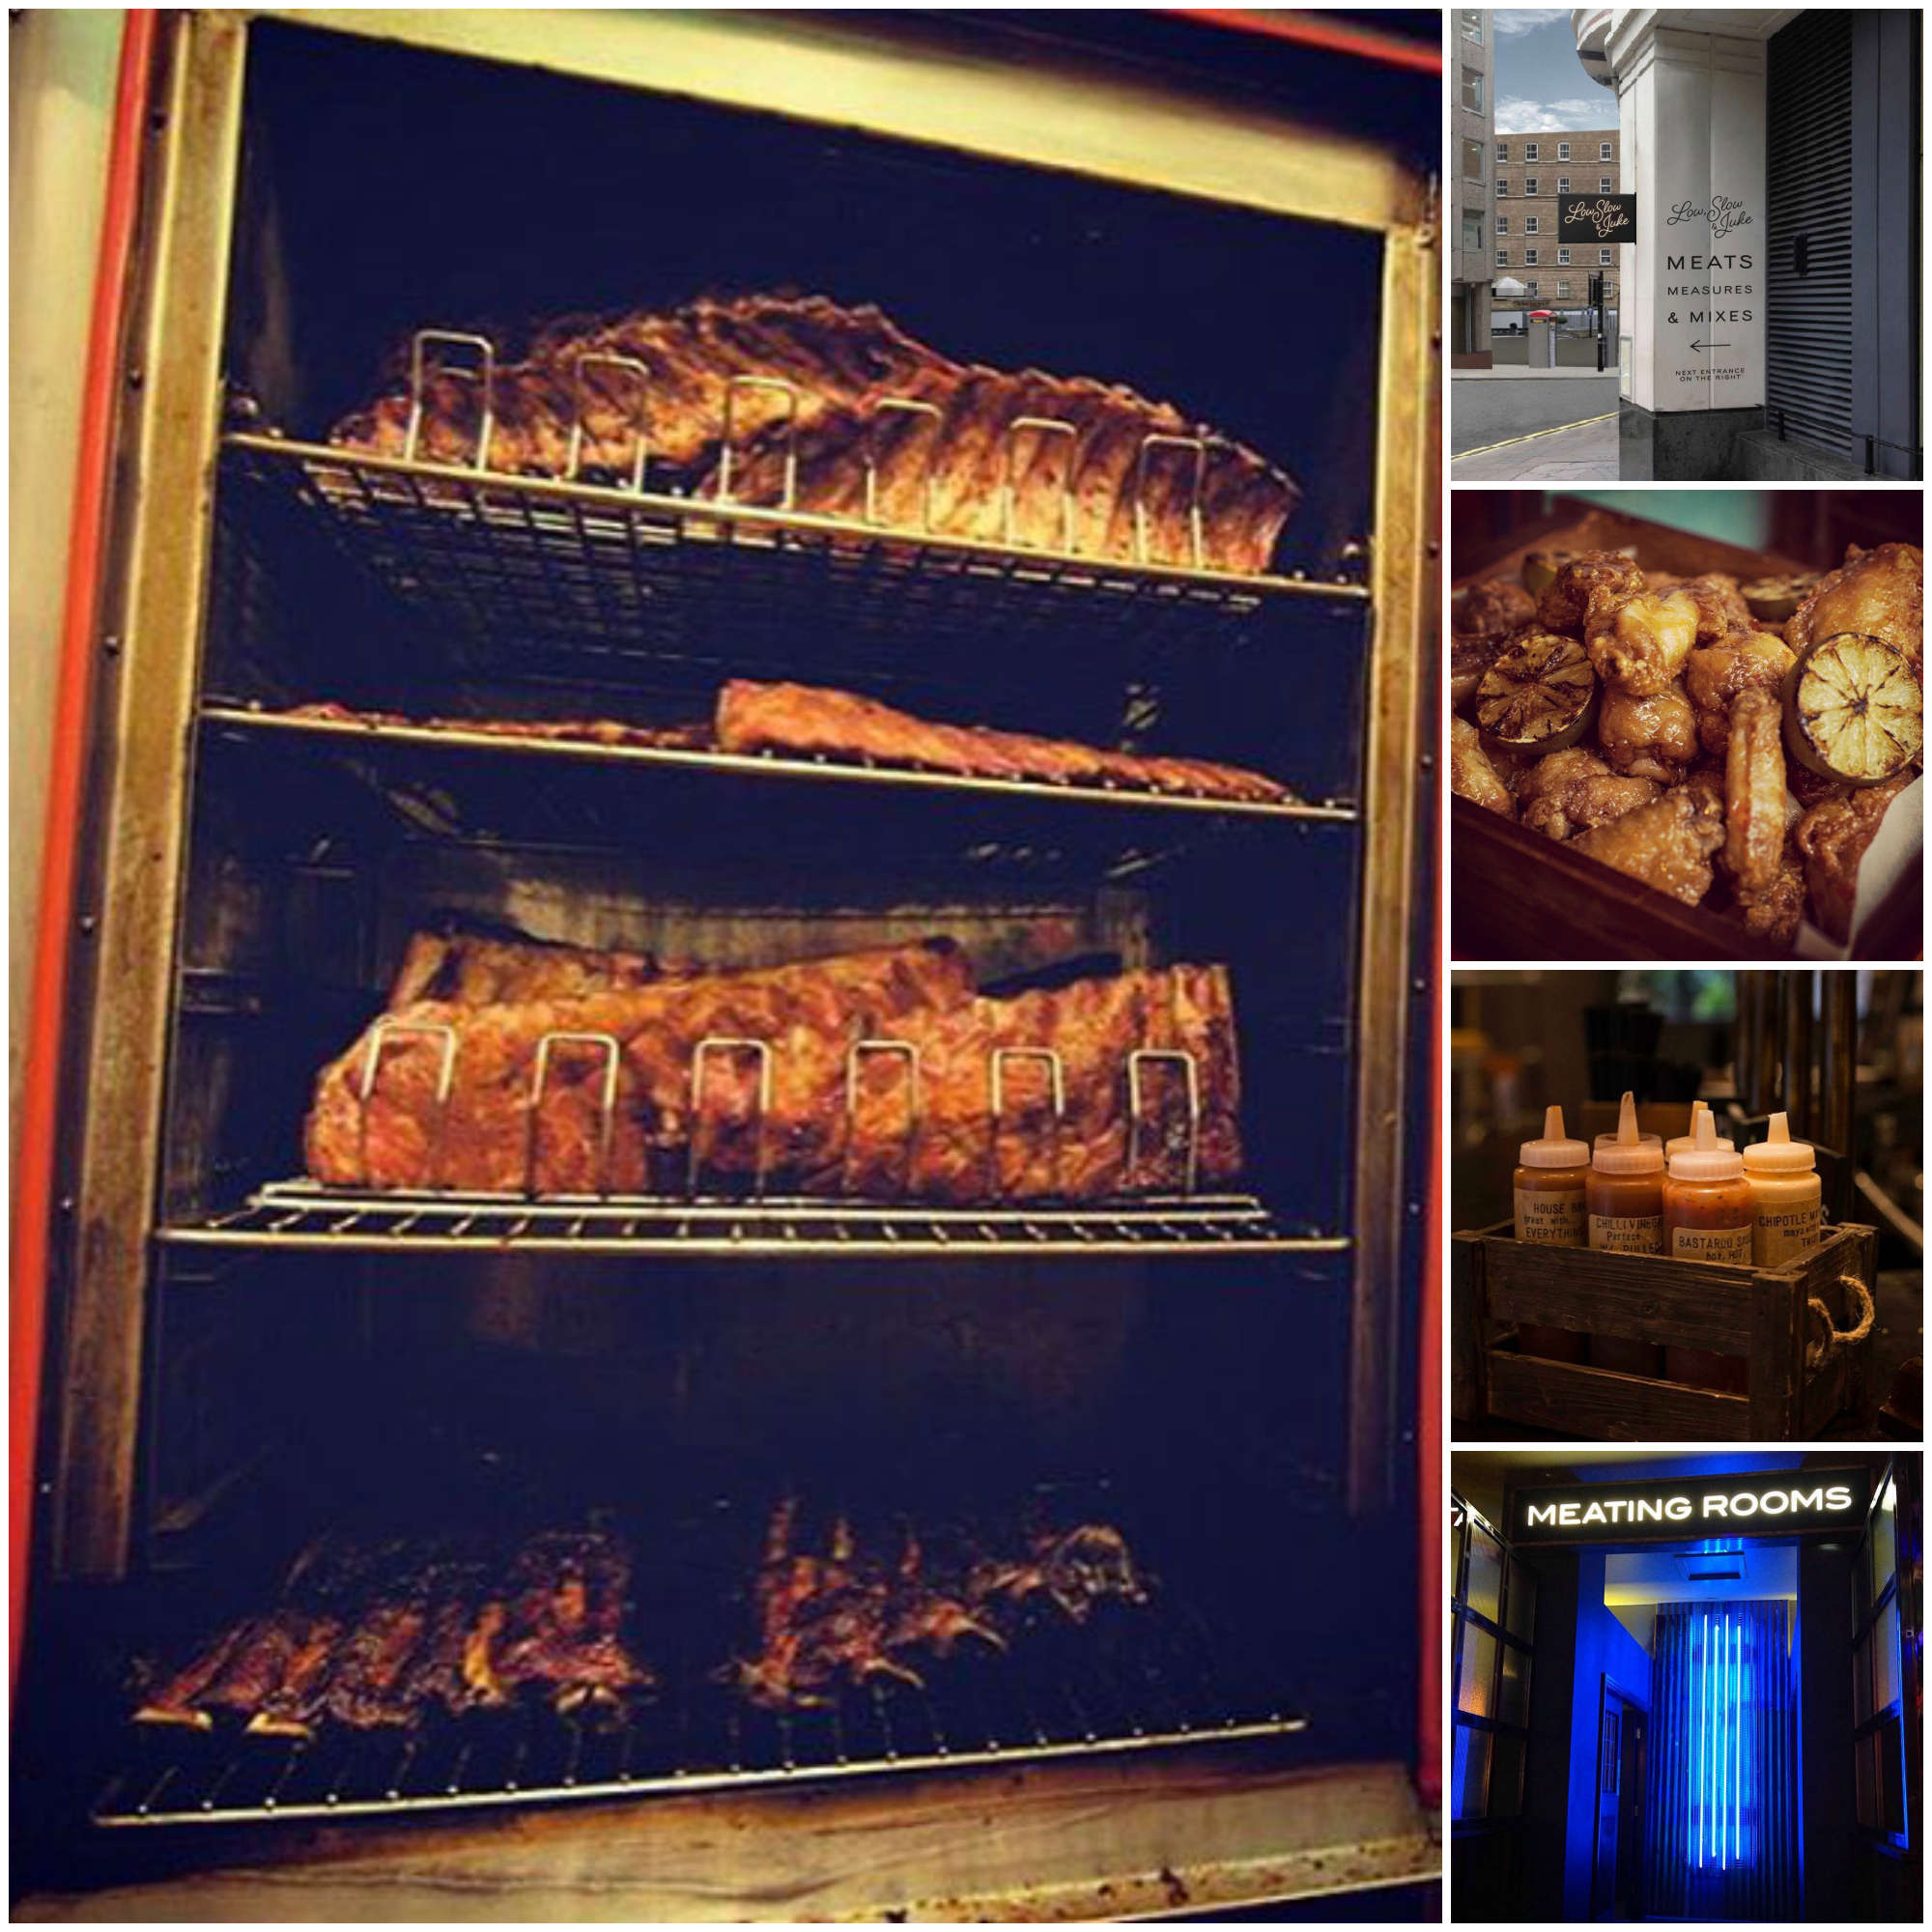 Low, Slow & Juke wants to win over London with slow smoked BBQ and cocktails. (Images: Low, Slow & Juke)